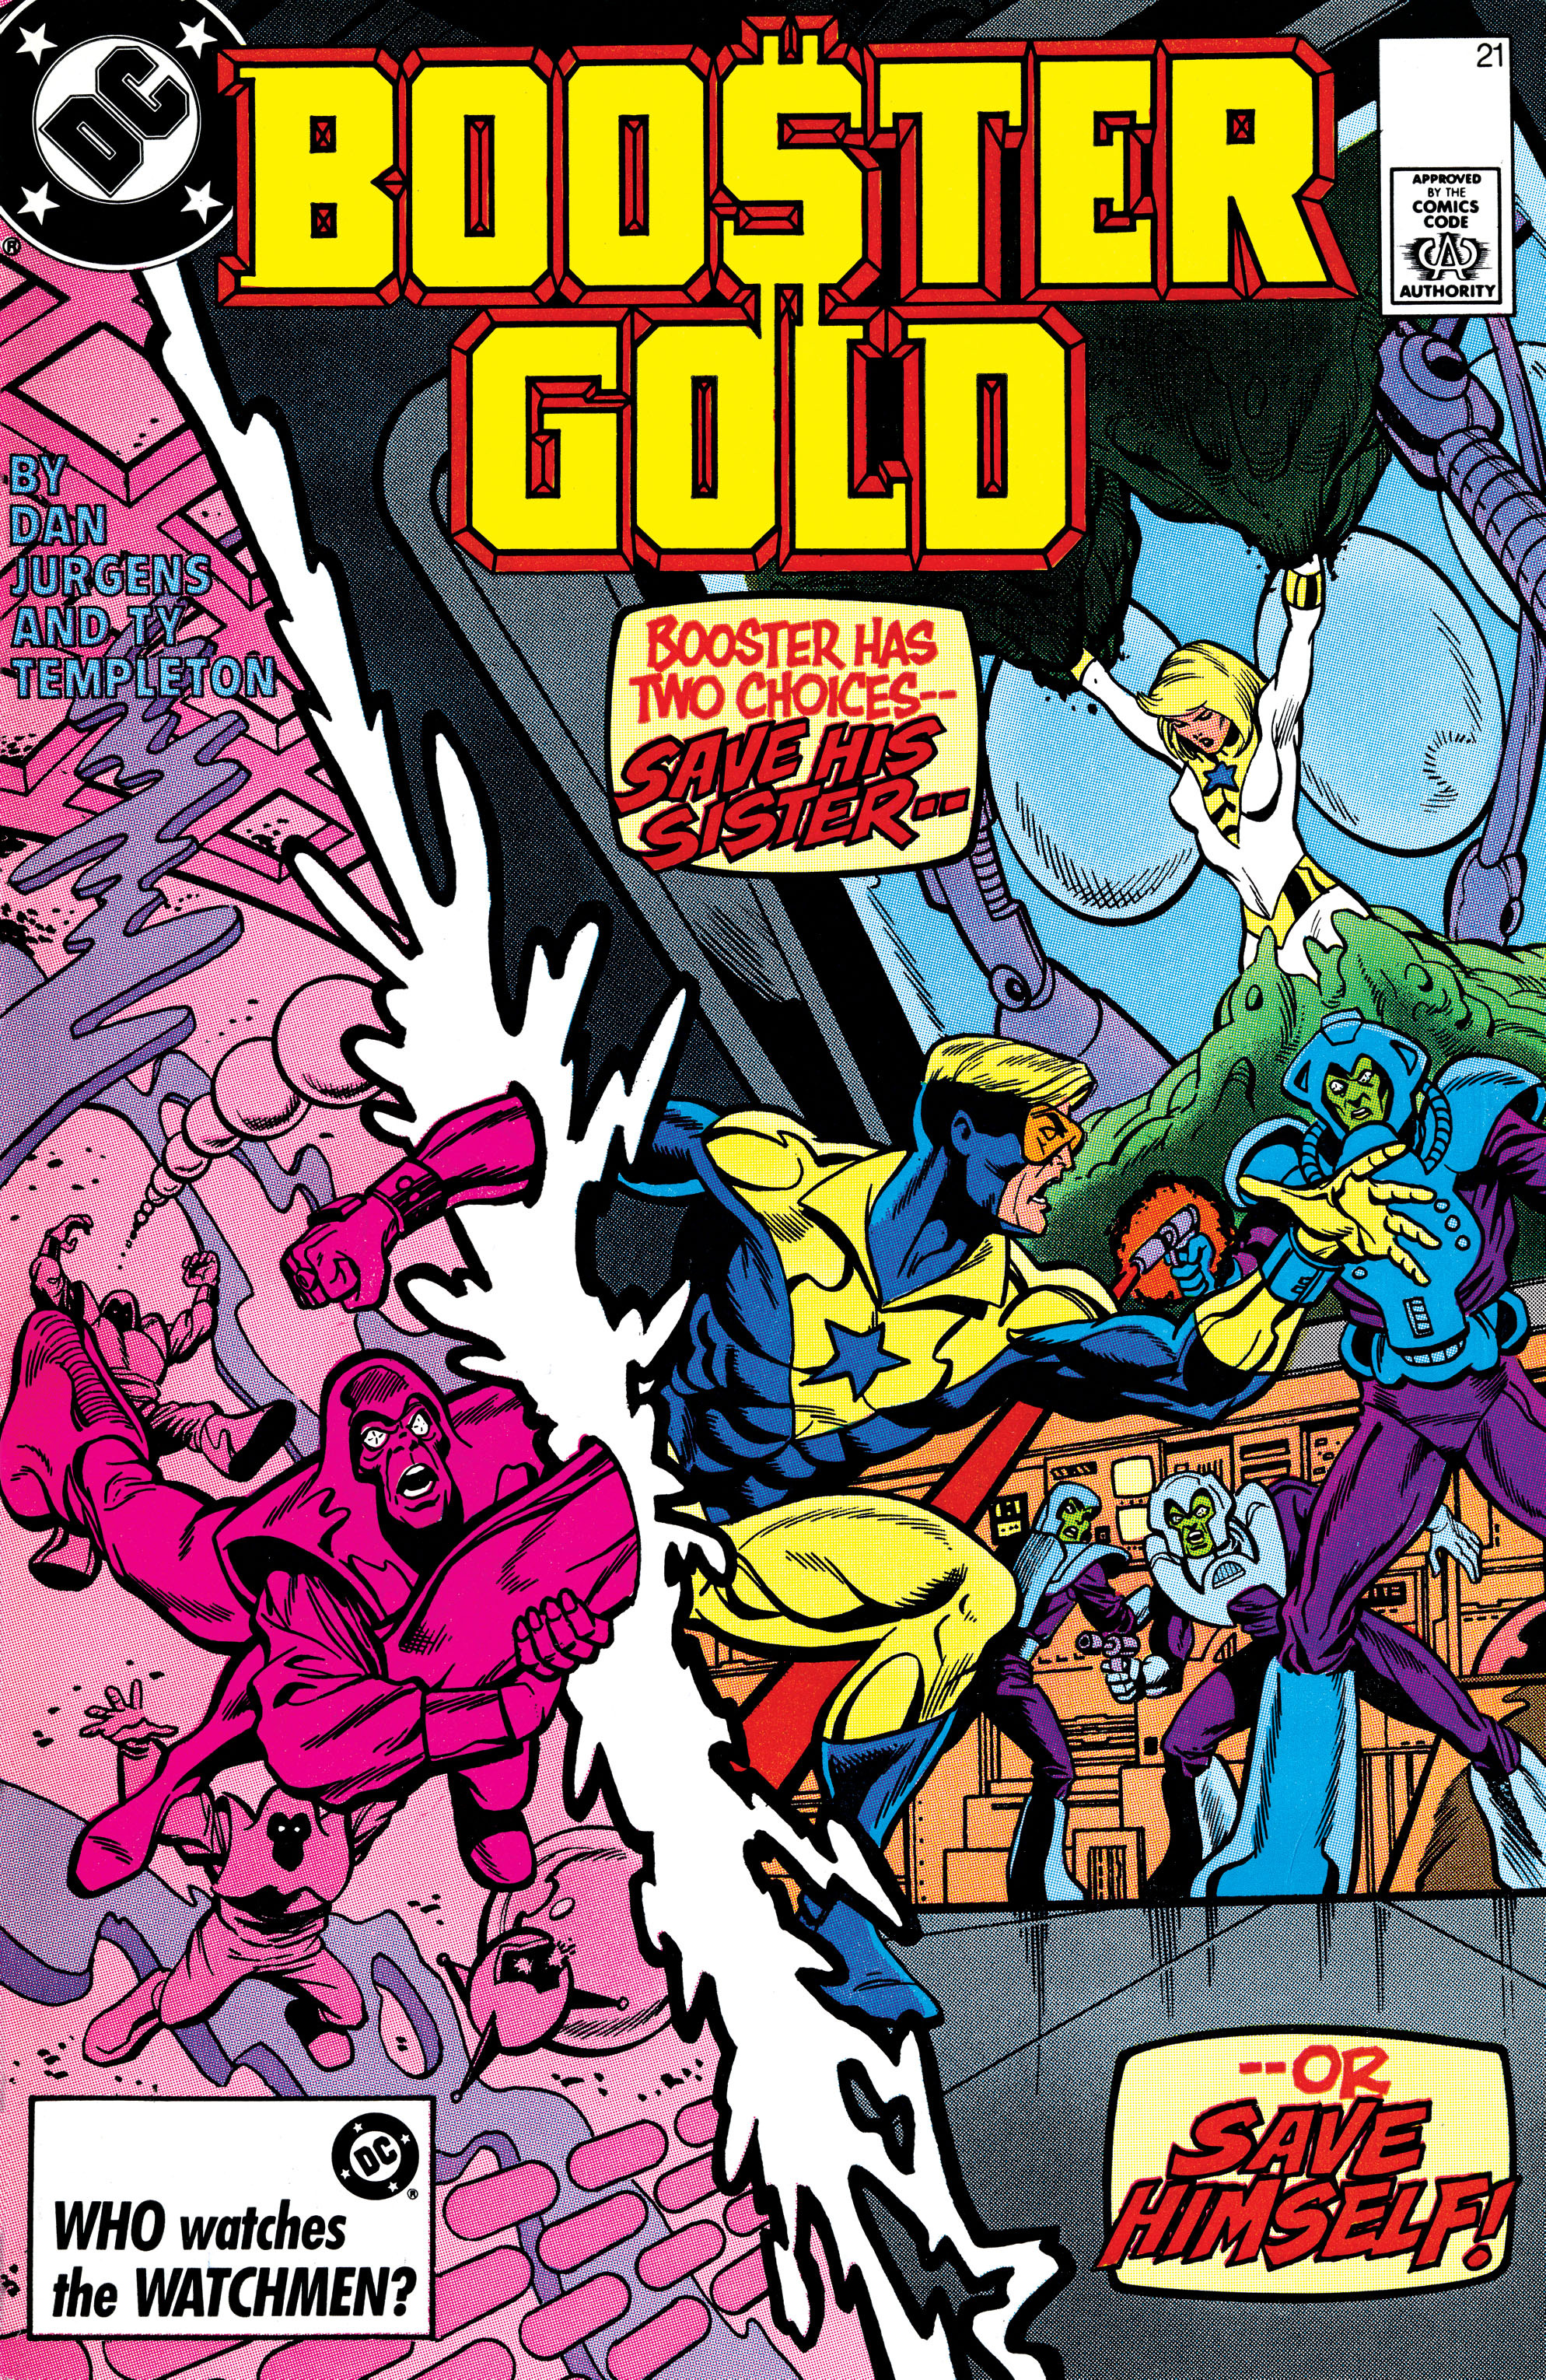 Booster Gold 1986 Issue 21